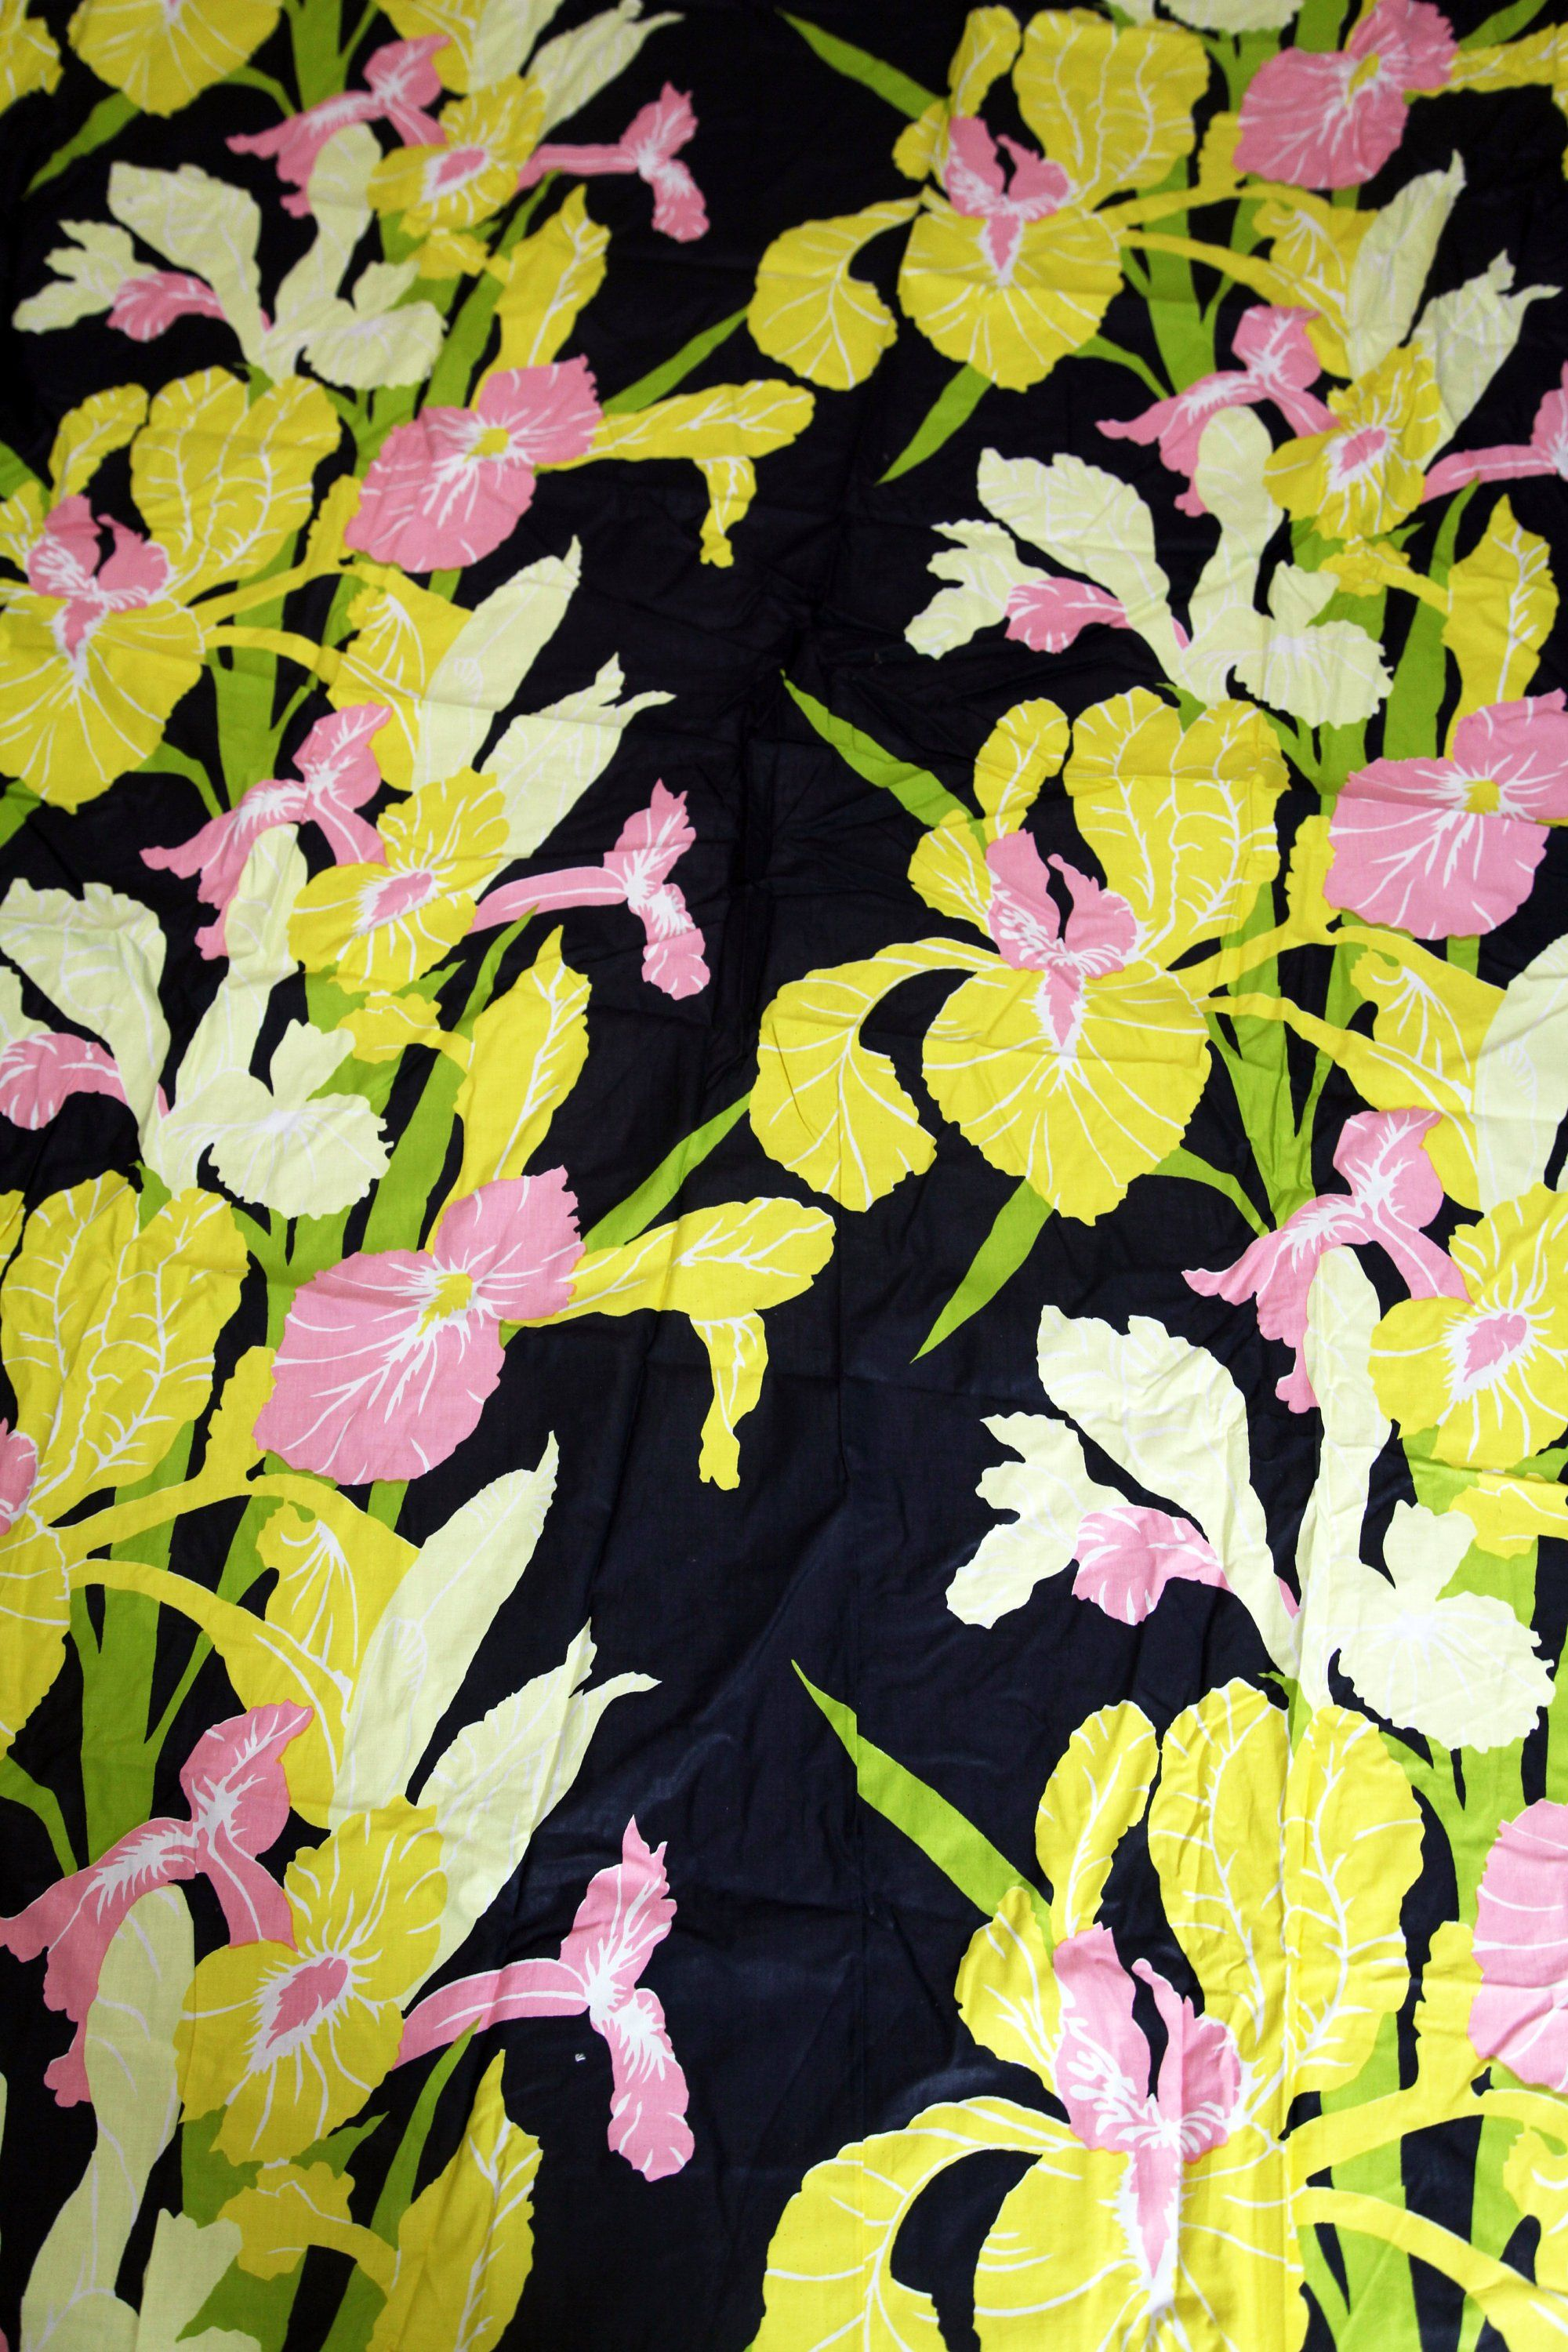 Vintage S M Hexter Hand Print Fabric Panel Floral Iris Pattern Pink Yellow Black By 216vintagemodern On Etsy Hand Printed Fabric Vintage House Fabric Panels